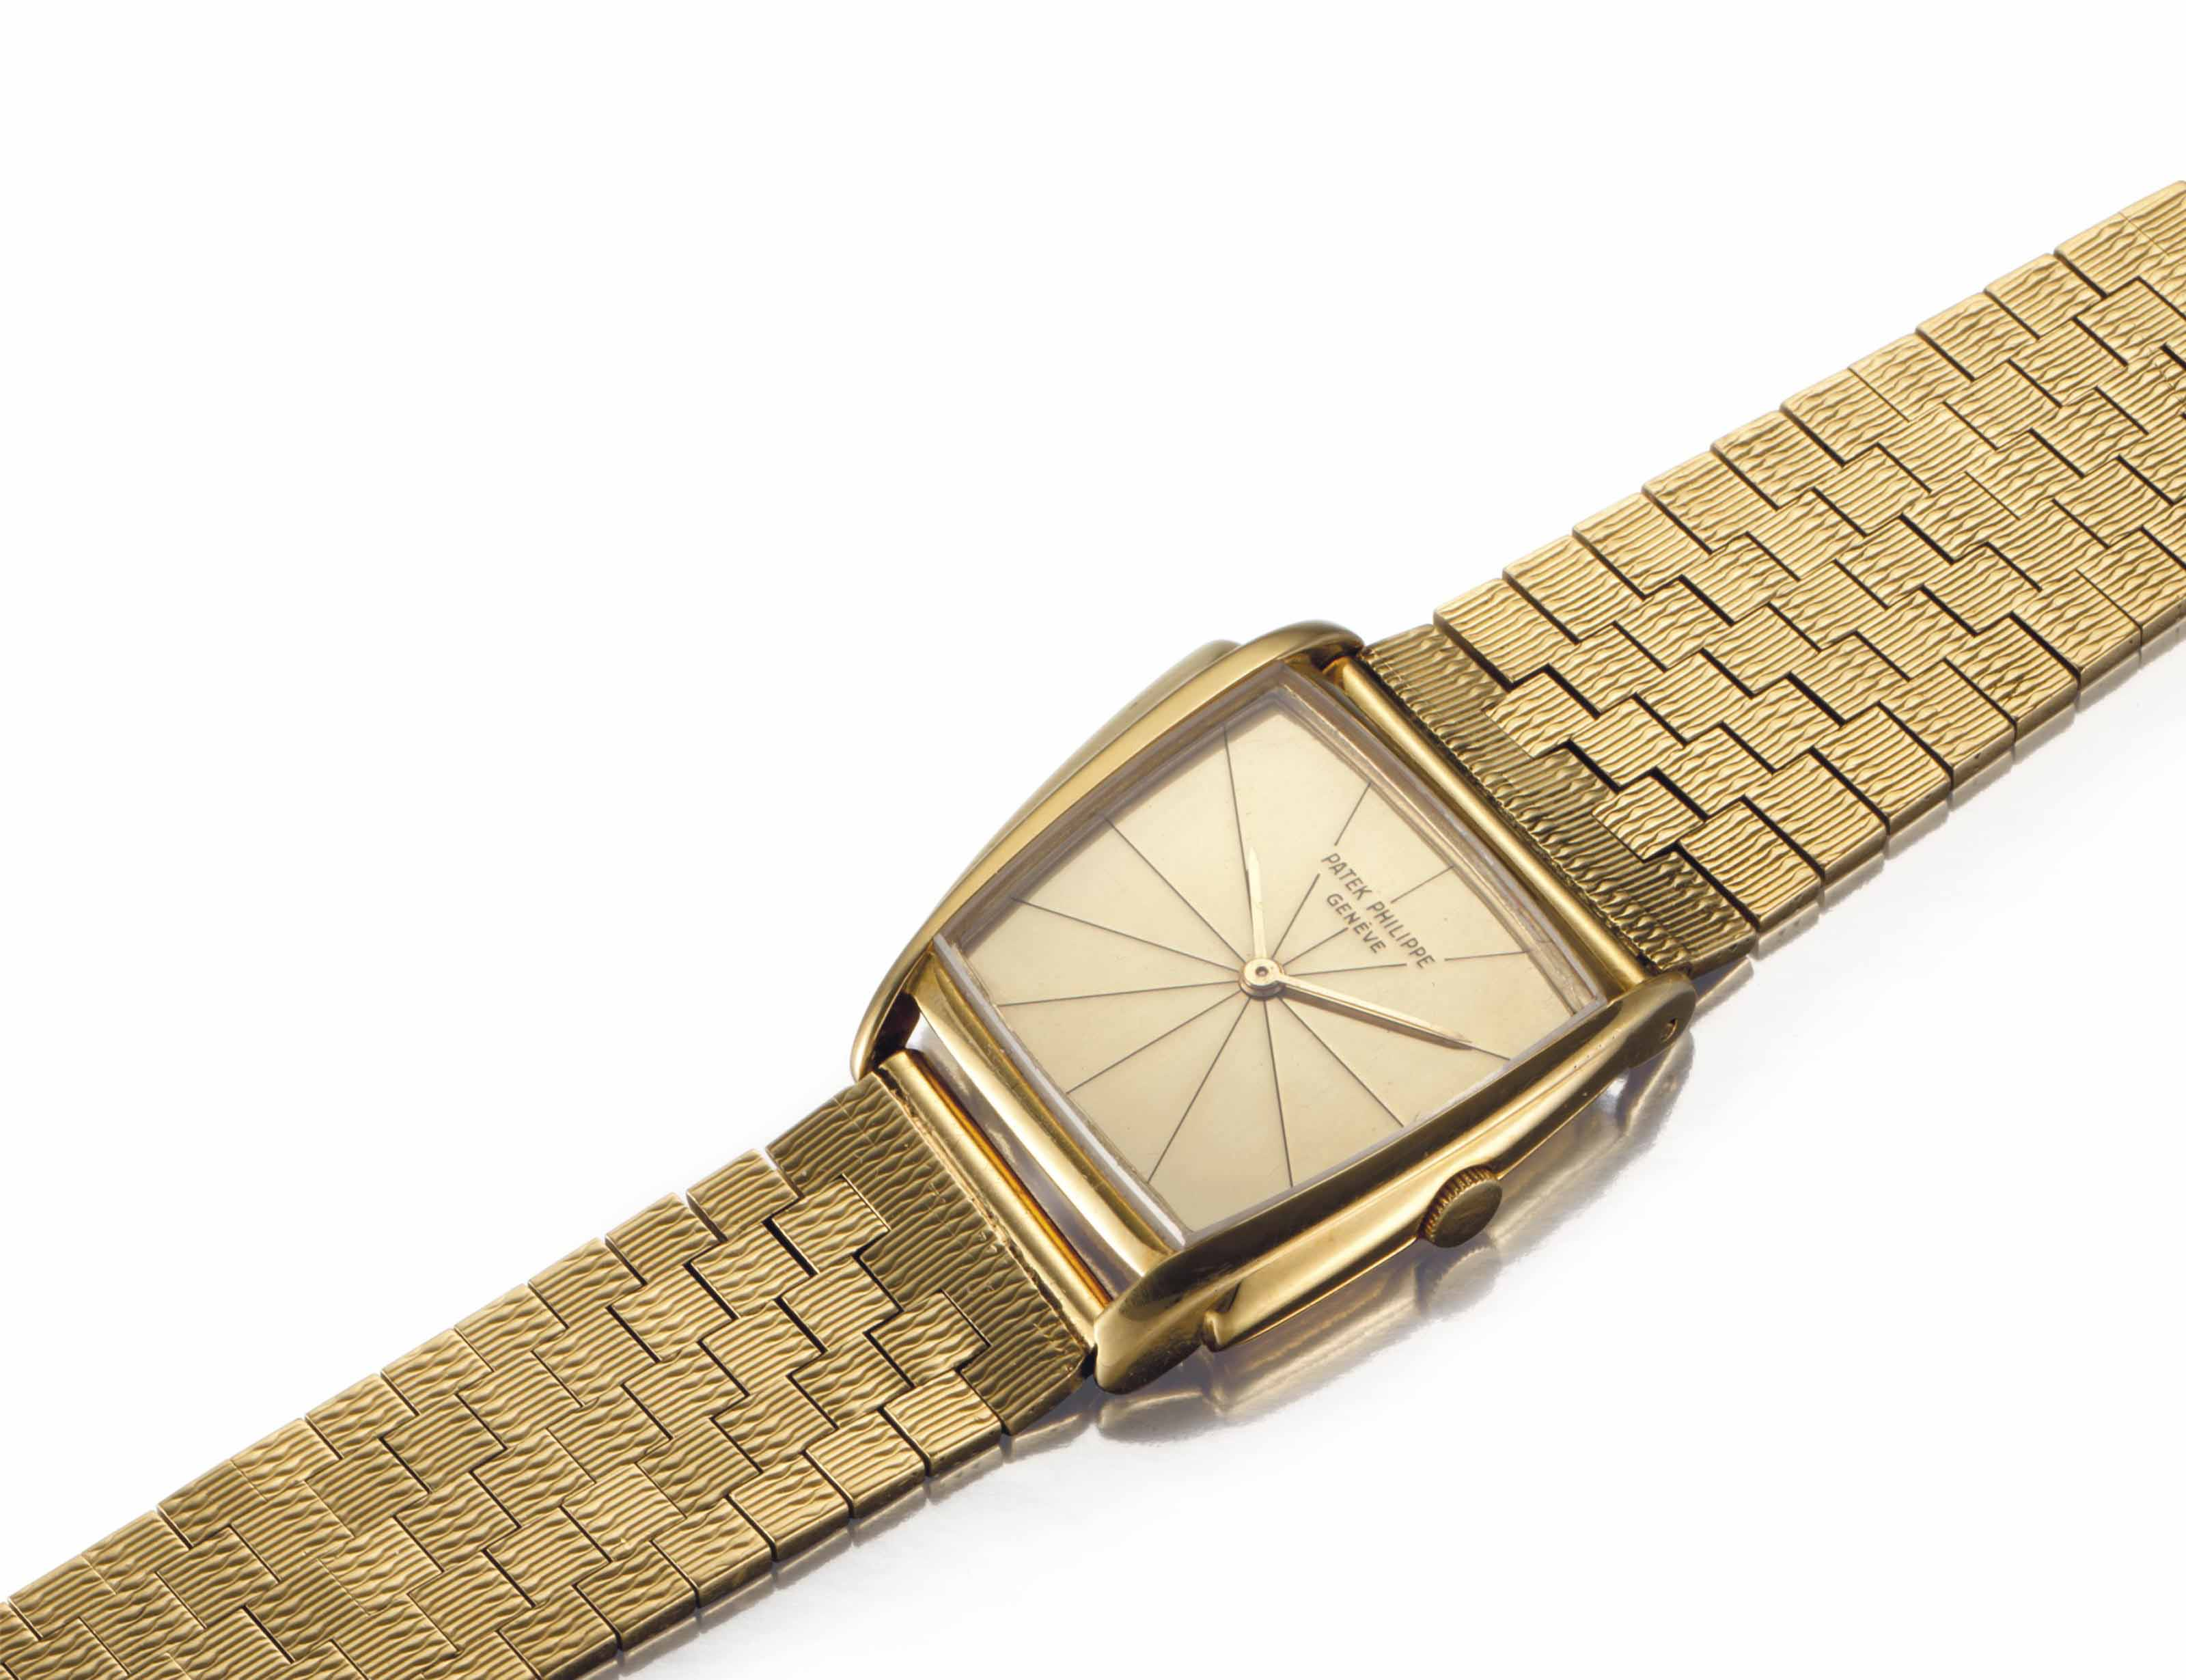 Patek Philippe. An Extremely Fine and Rare 18k Gold Asymmetrical Wristwatch with Champagne Dial and Bracelet, Designed by Gilbert Albert and Retailed by Serpico Y Laino